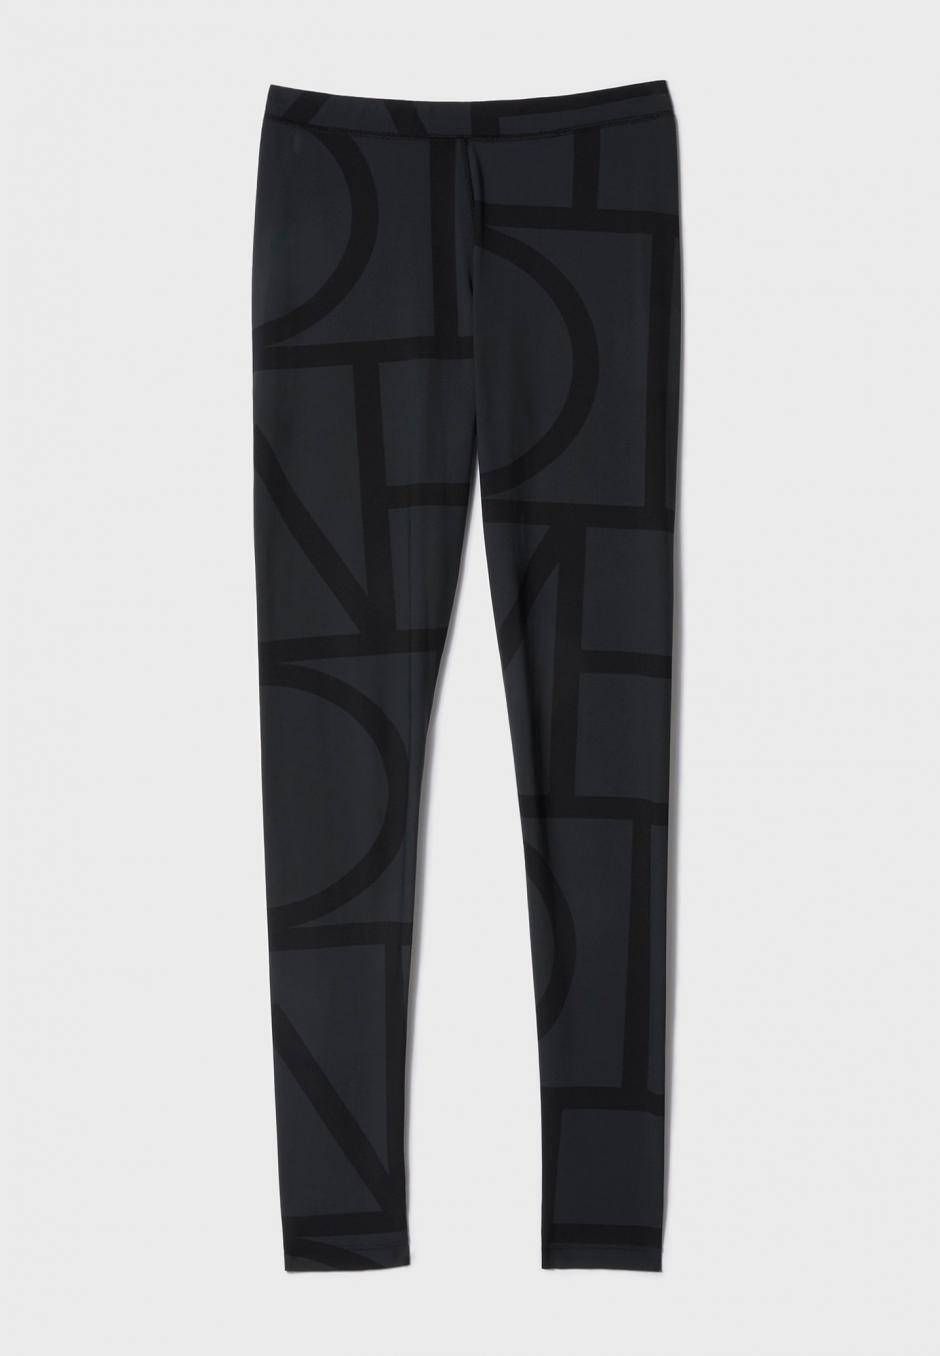 Totême Leon leggings